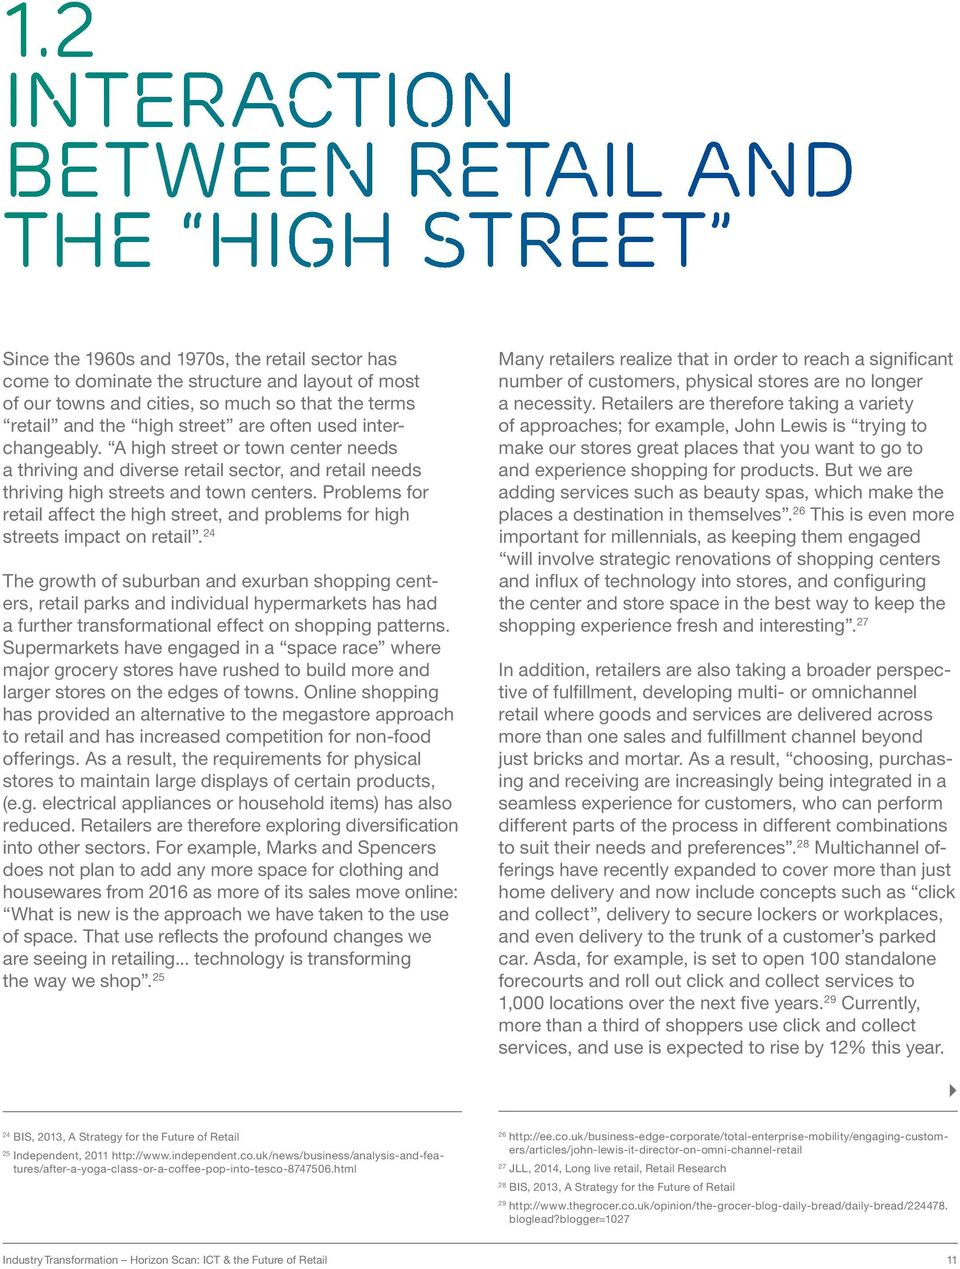 Problems for retail affect the high street, and problems for high streets impact on retail.